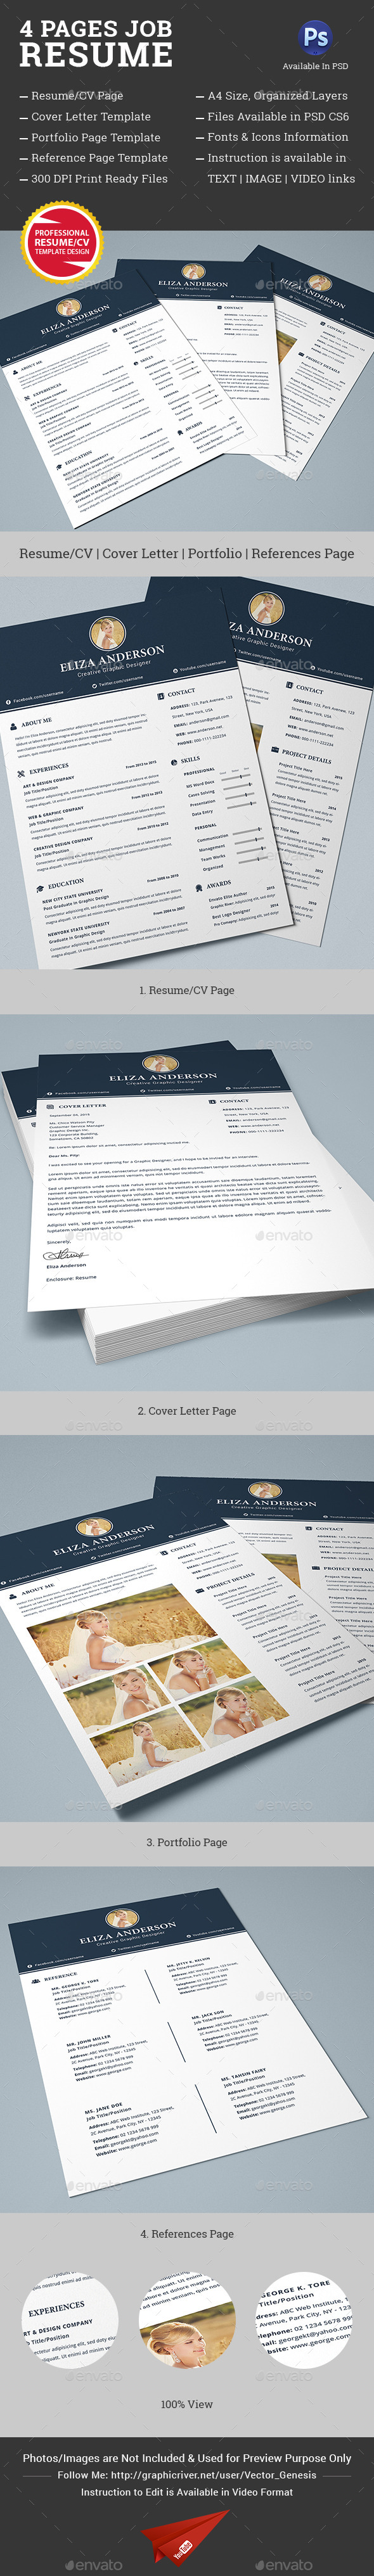 GraphicRiver 4 Pages Job Resume CV Set 10446098